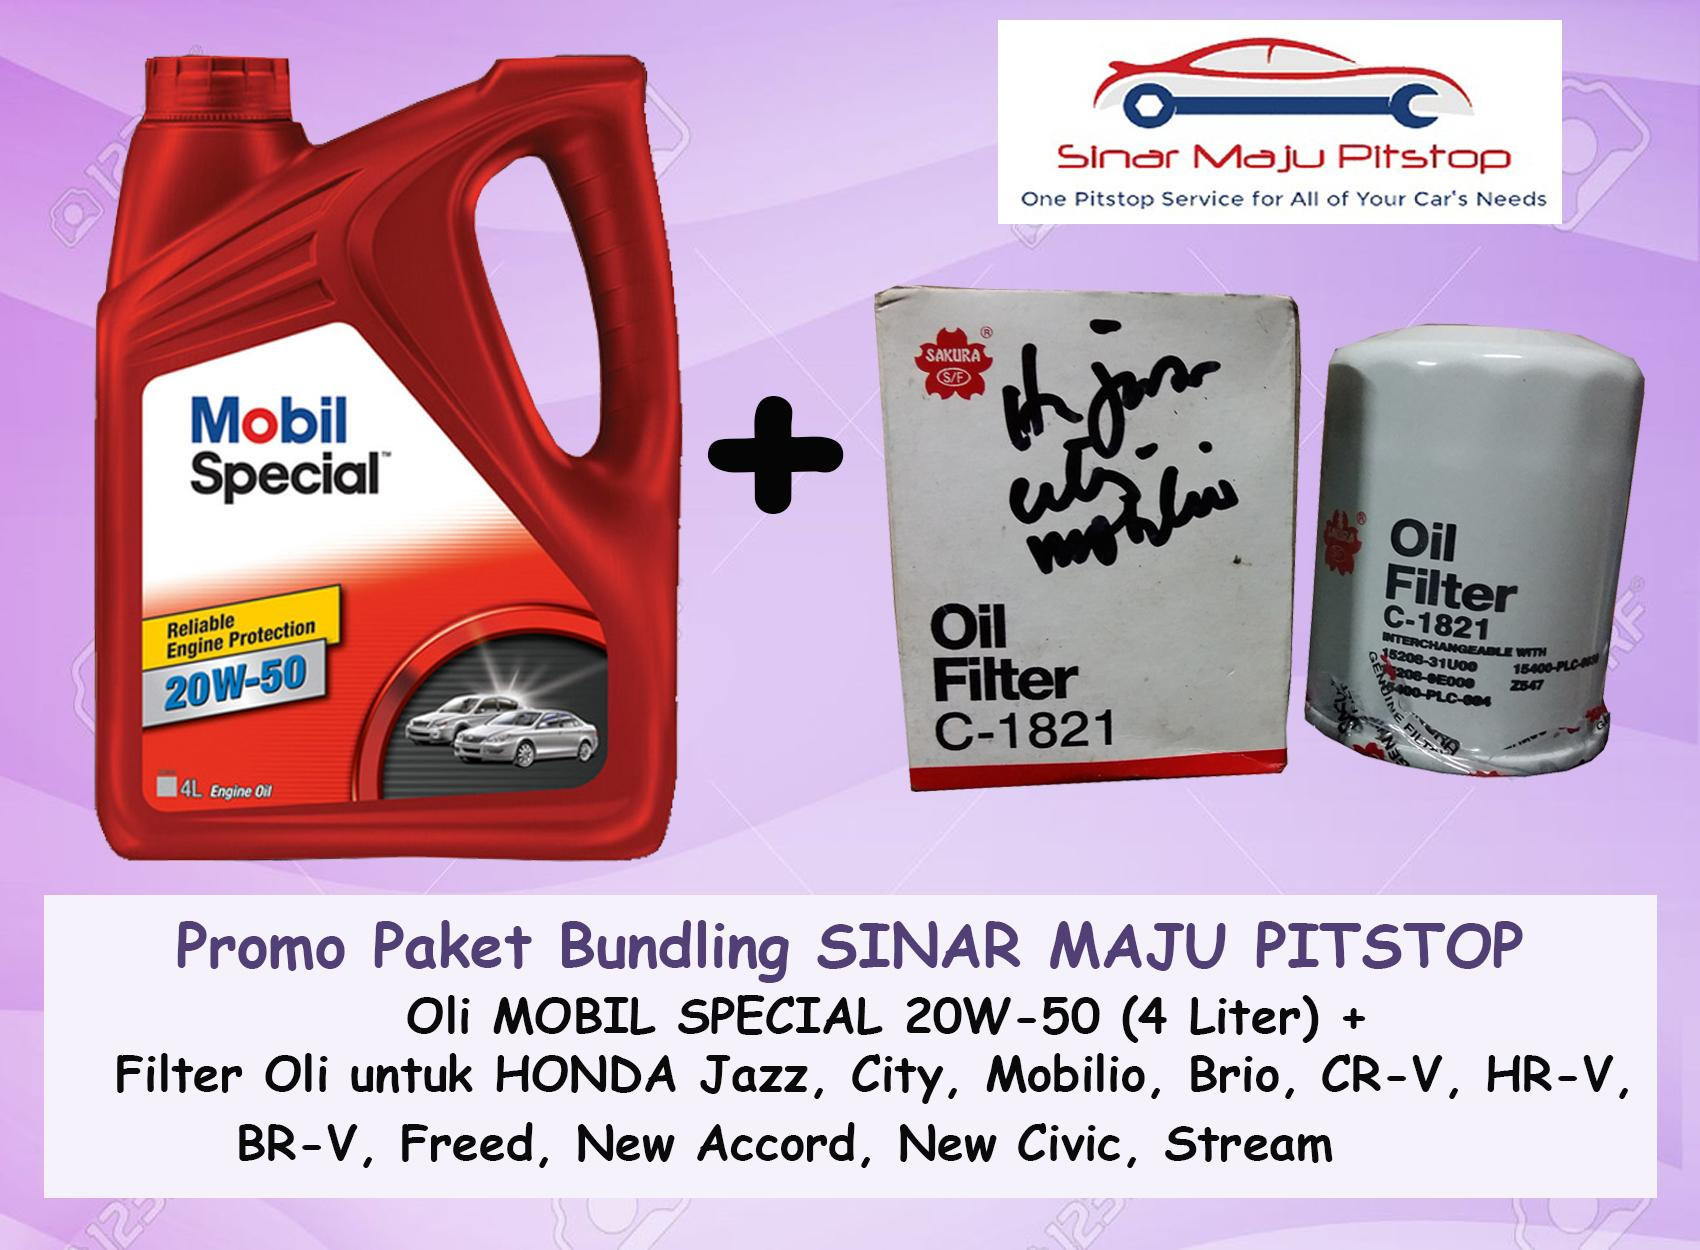 Promo Paket Bundling Oli MOBIL SPECIAL 20W-50 API SN 4 LITER & Filter Oli HONDA JAZZ &HONDA ALL NEW JAZZ RS ORIGINAL